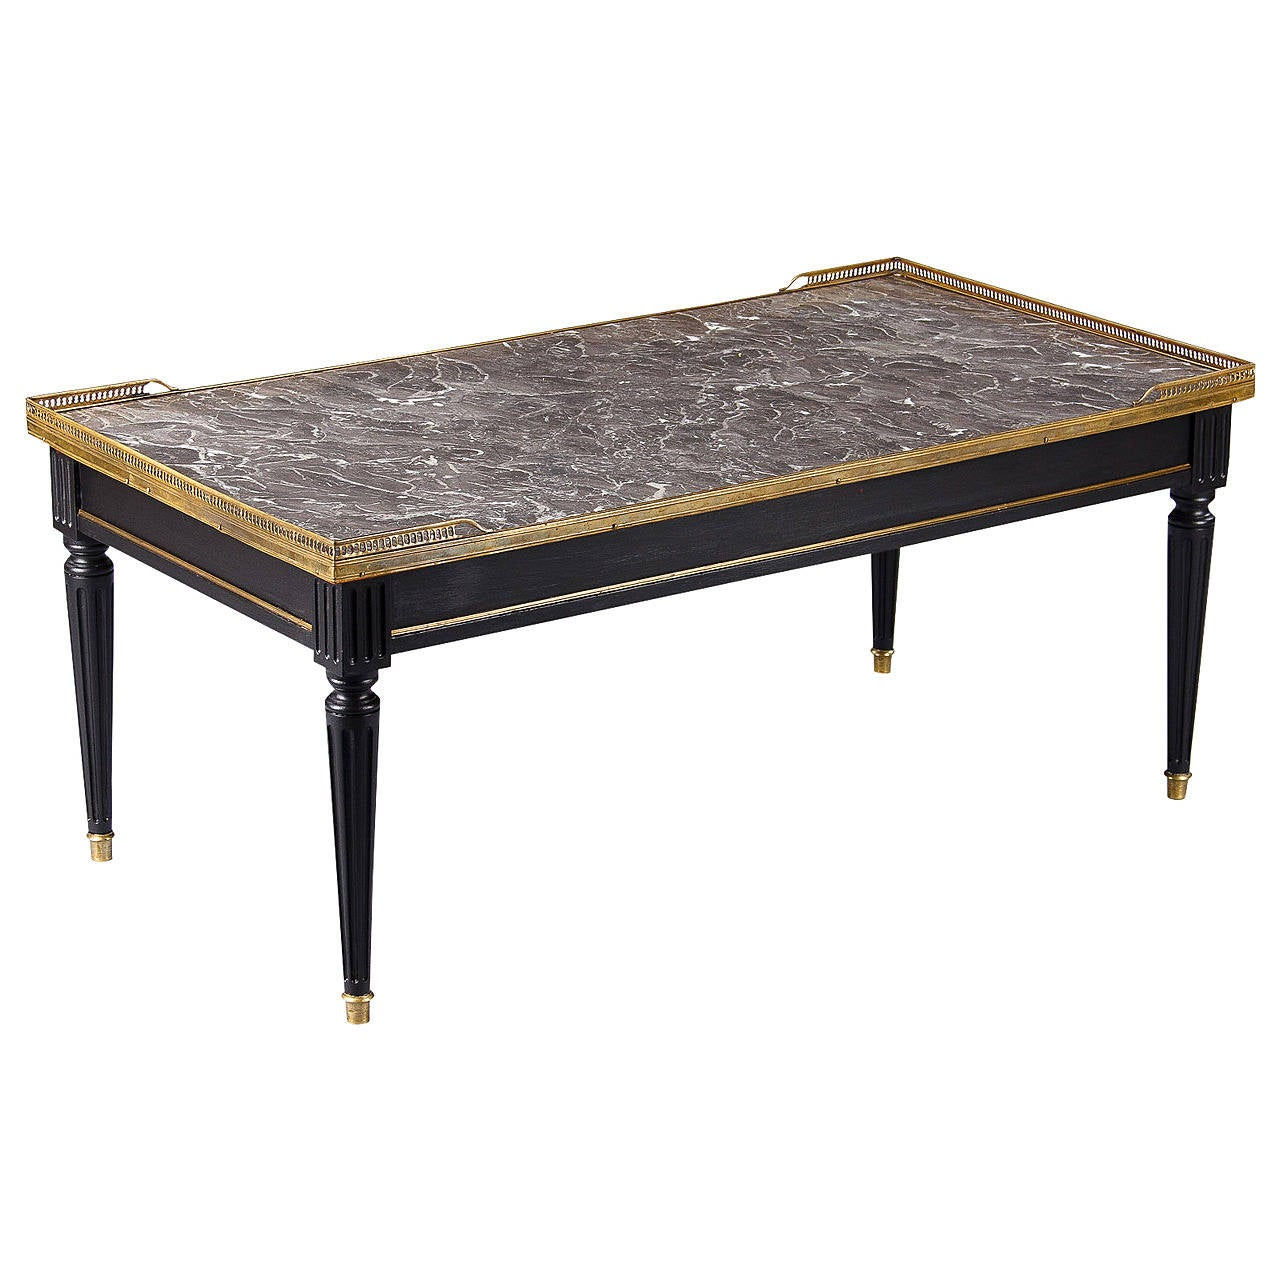 French louis xvi style marble top coffee table 1940s at 1stdibs Coffee tables with marble tops